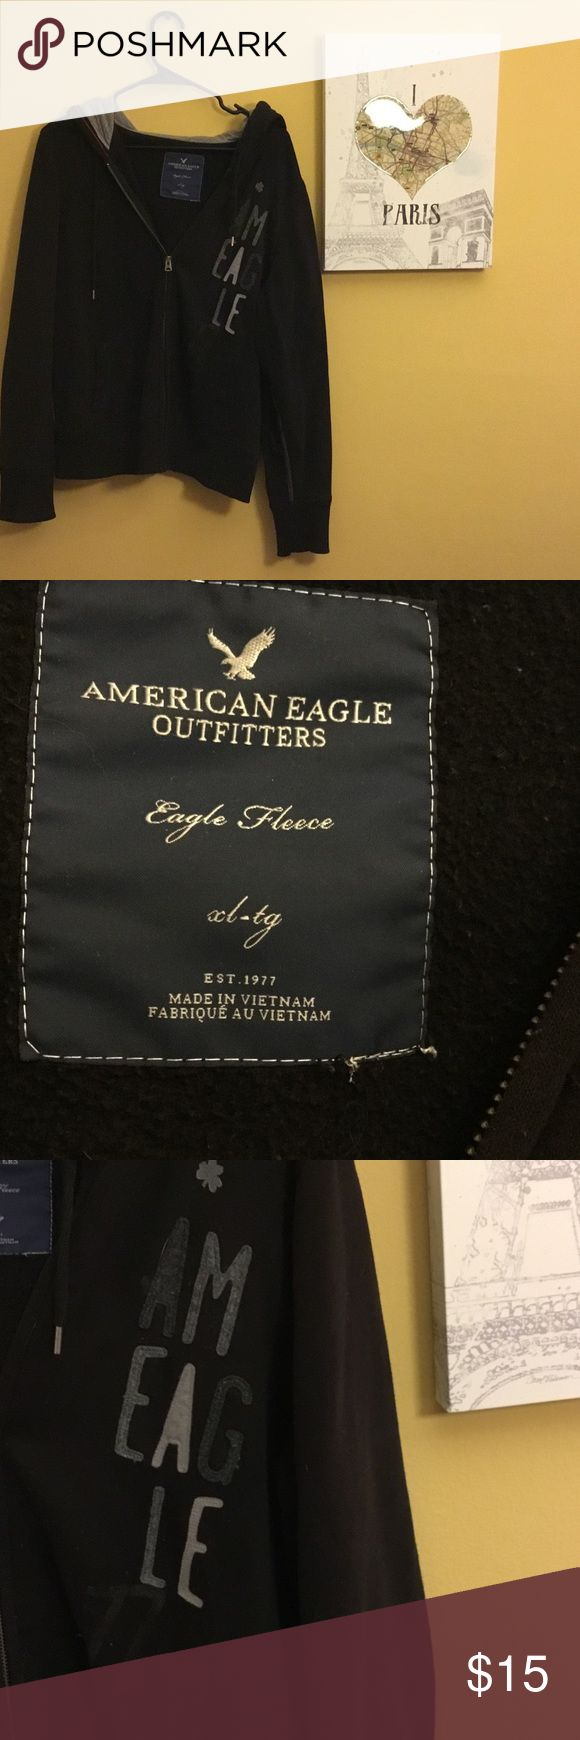 American eagle jacket Black American eagle jacket. Size XL American Eagle Outfitters Jackets & Coats